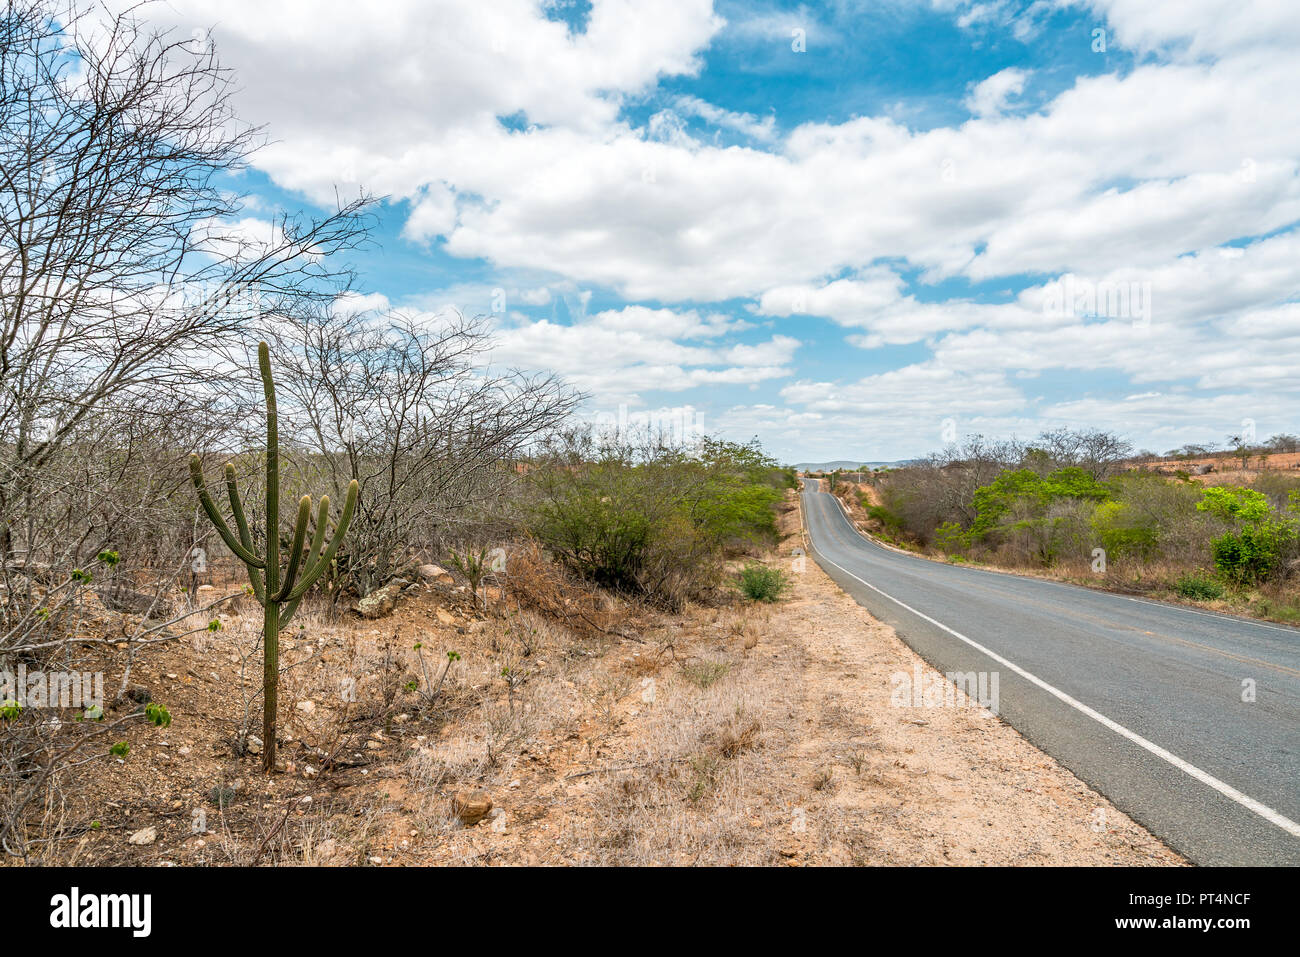 Cabaceiras, Paraíba, Brazil - February, 2018: Road to infinite with Cactus in a Caatinga Biome at Northeast of Brazil - Stock Image